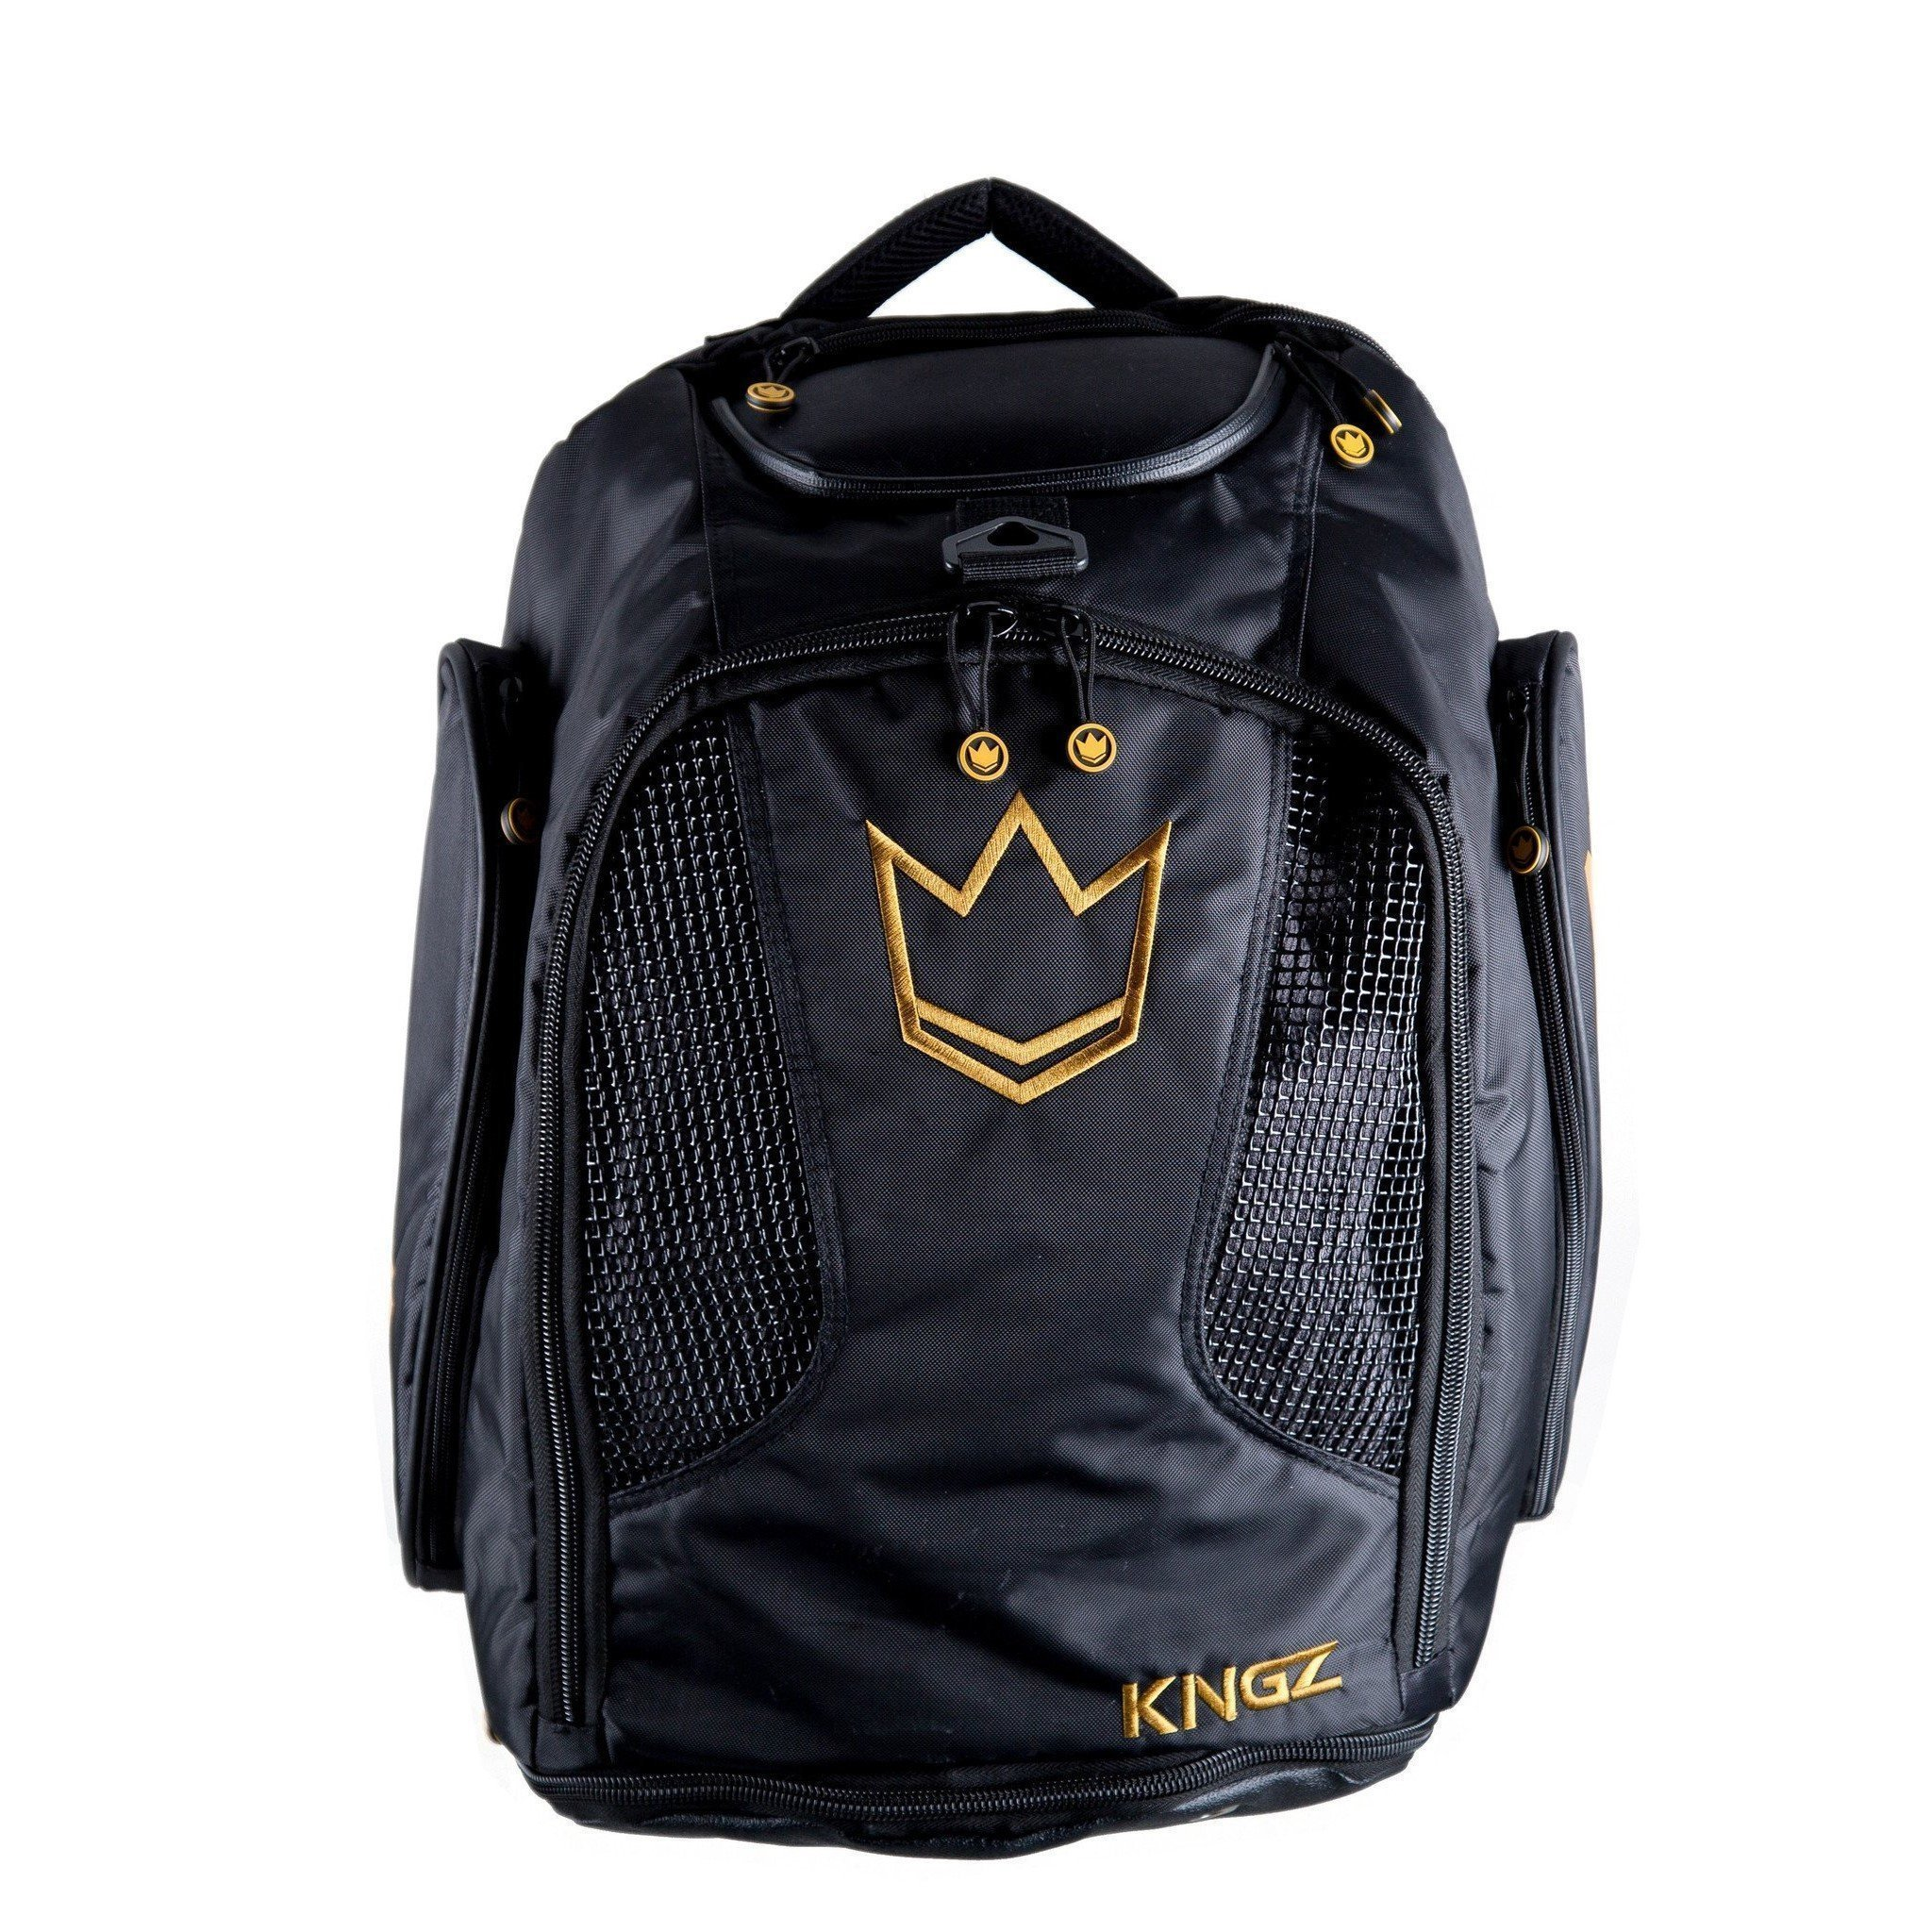 82860f46d209 Kingz Convertible Training Bag Black